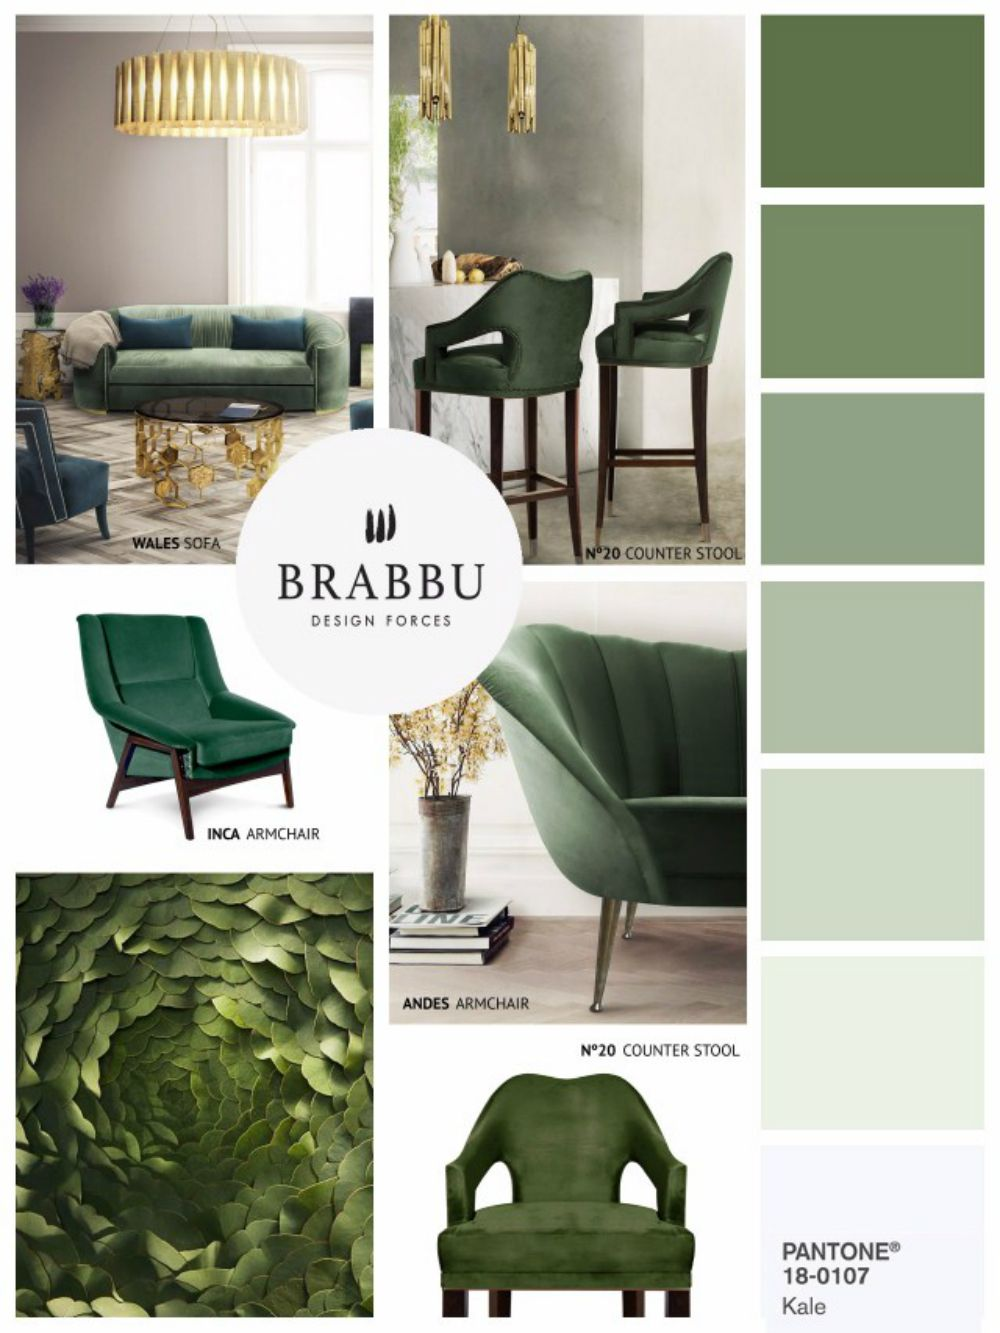 home decor color trends for spring 2017 according to pantone, Wohnzimmer dekoo